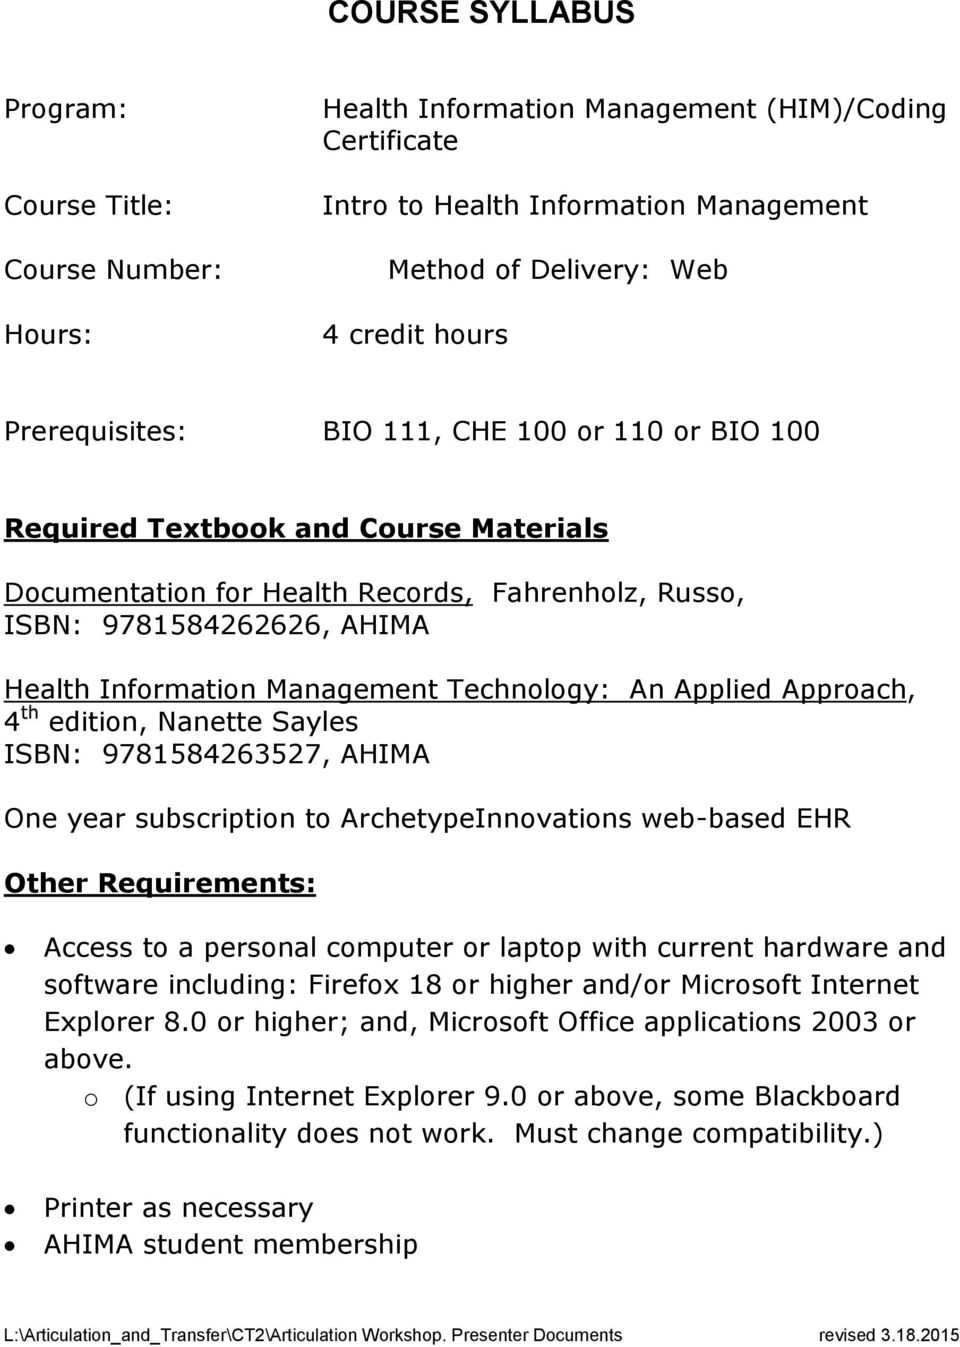 Course Syllabus Health Information Management Himcoding